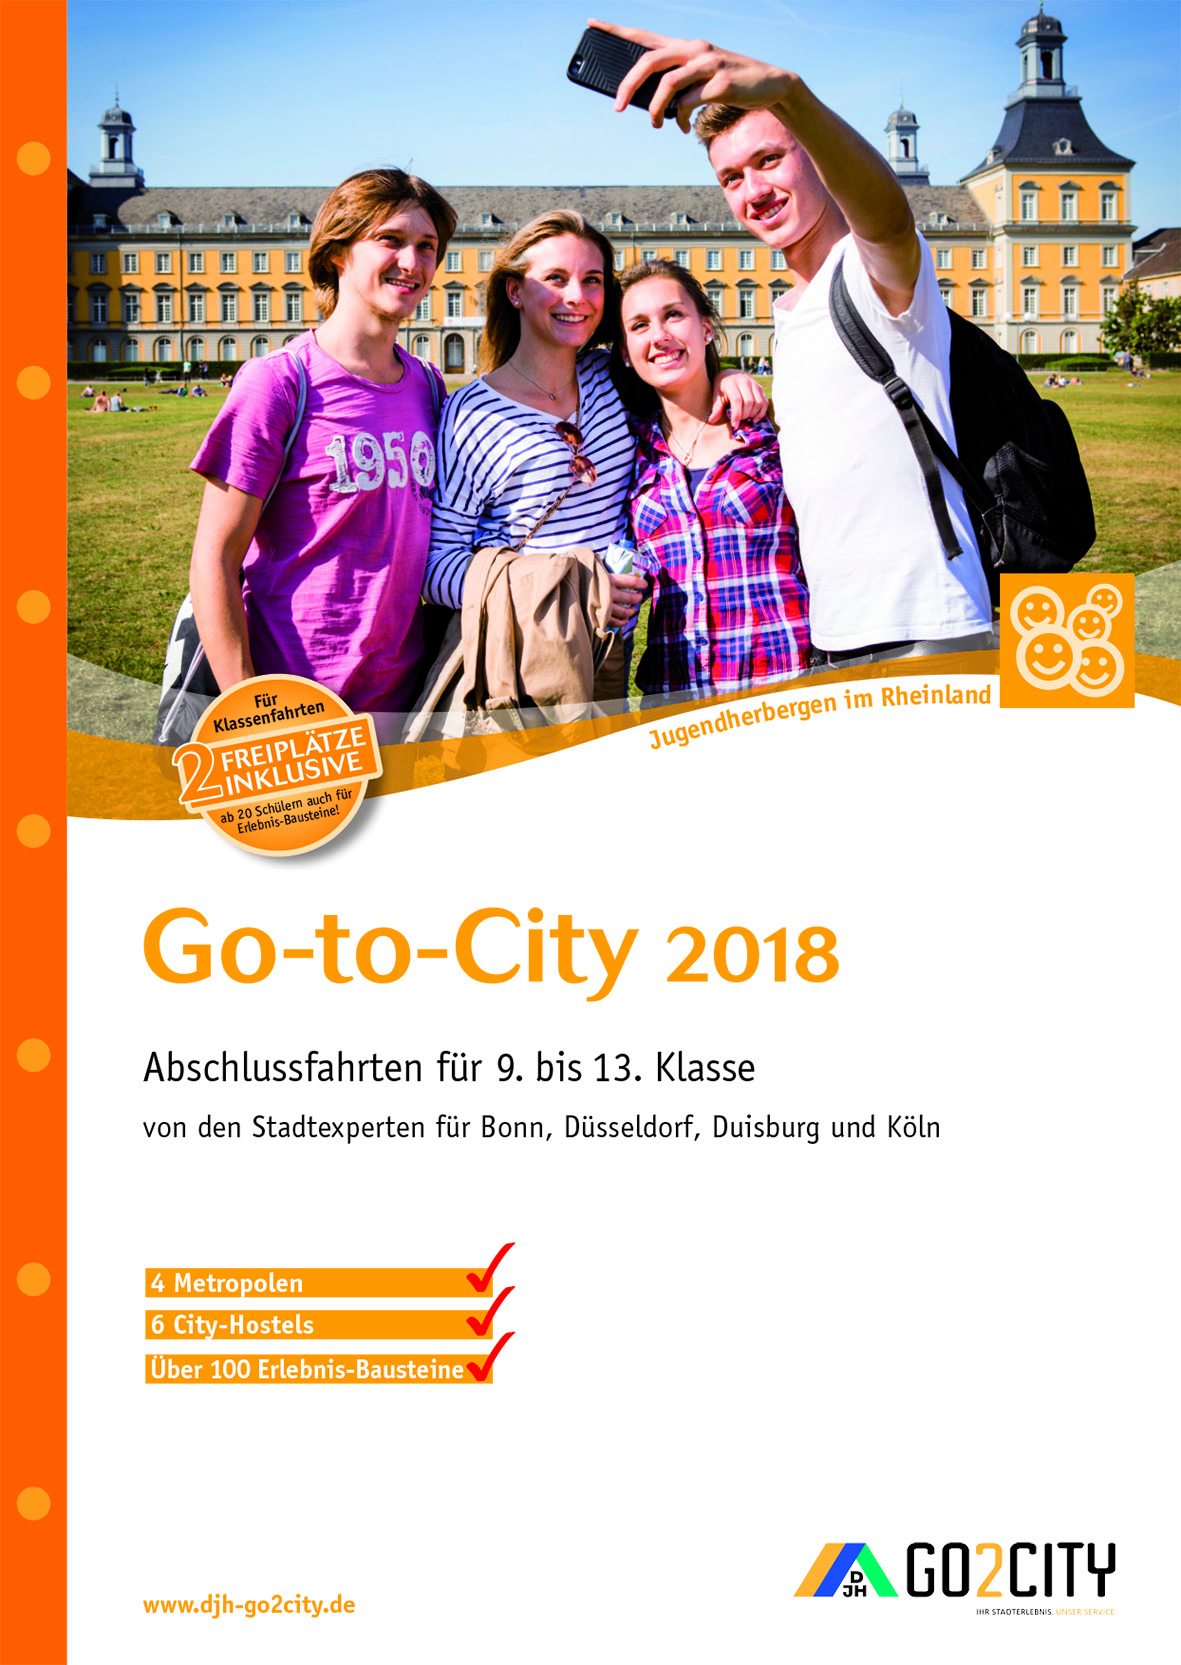 Go-to-City 2018